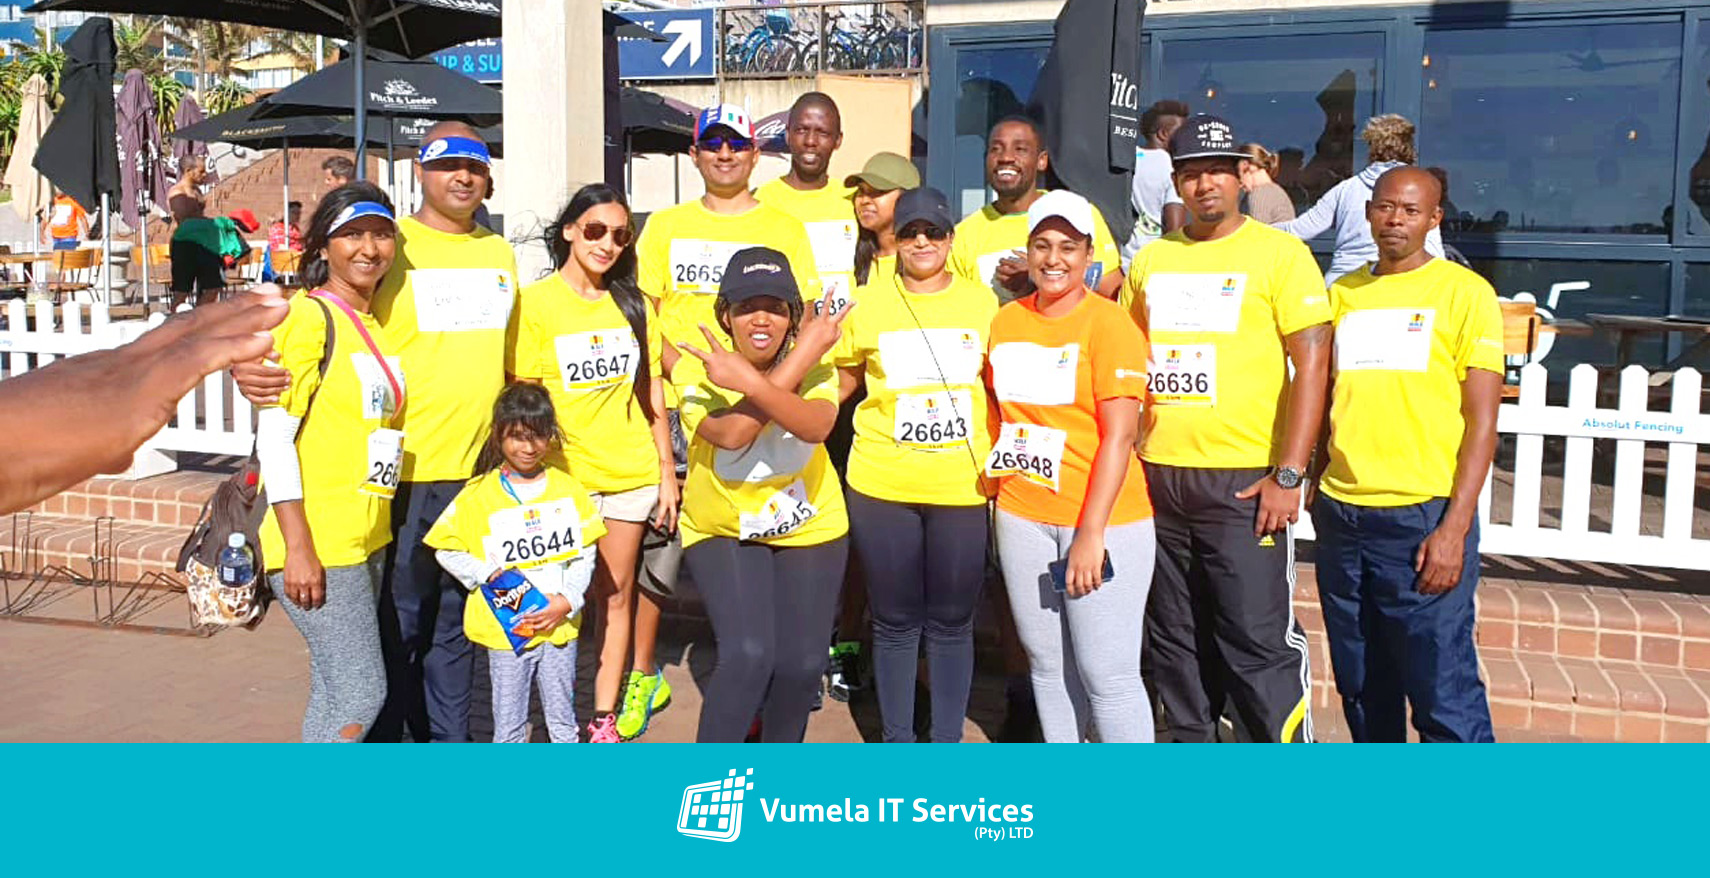 Vumela IT attended the ECR Big walk